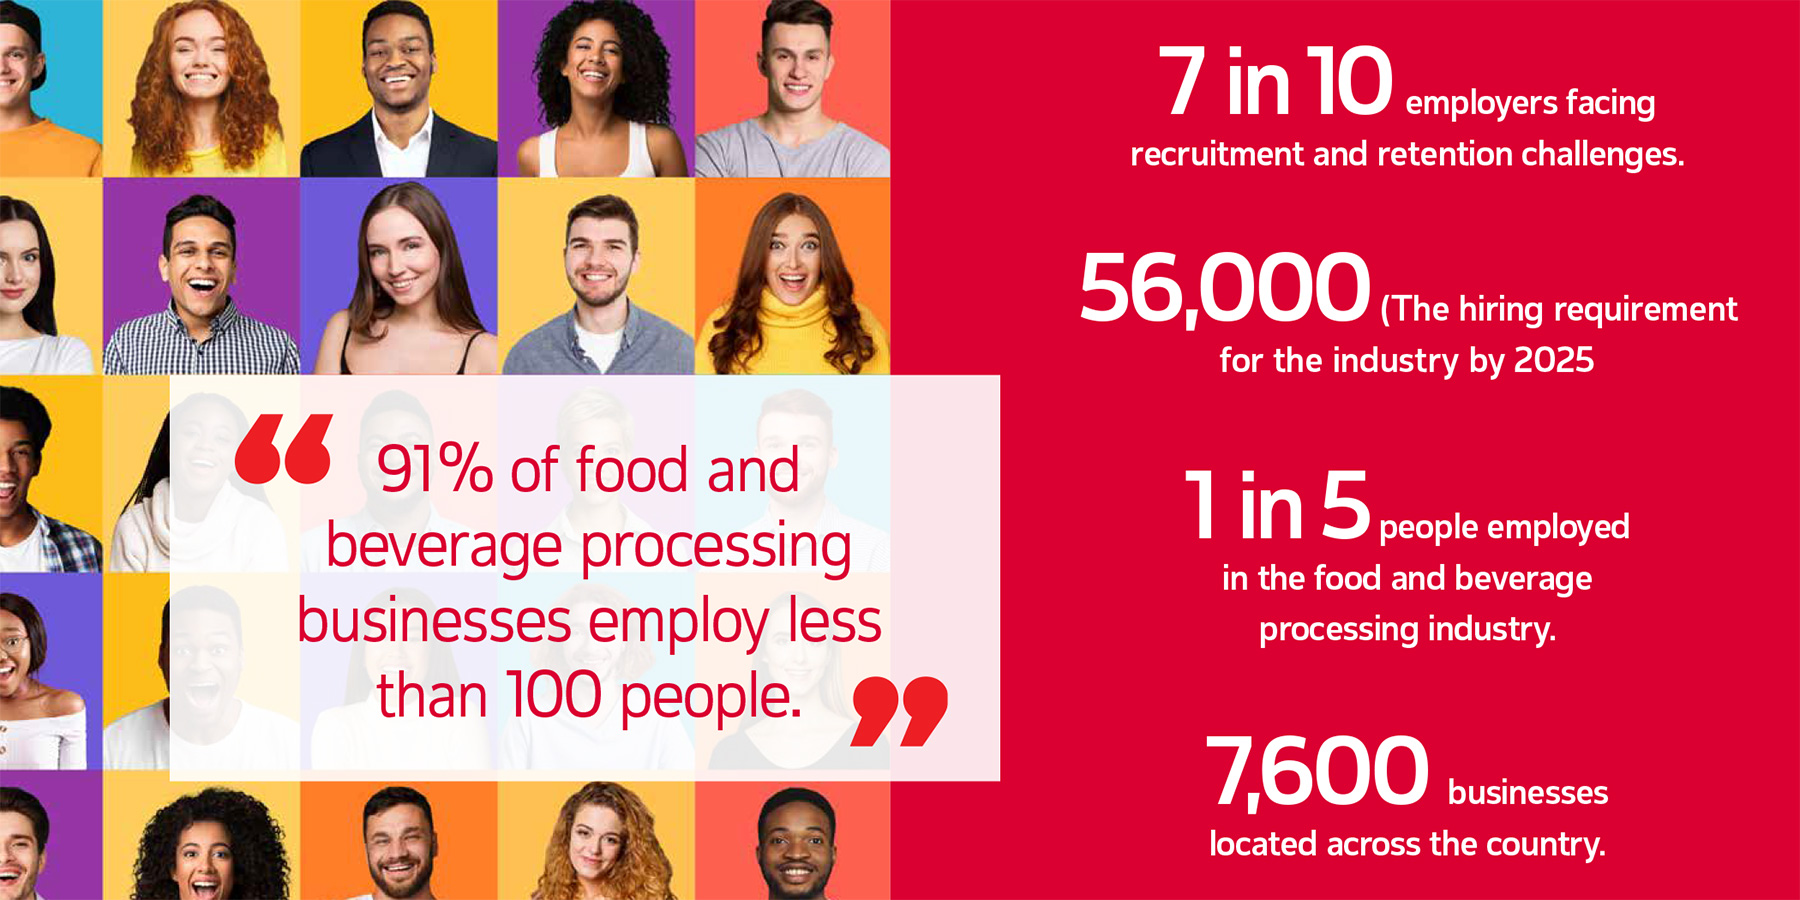 report page showing an infographic of stats including 7 in 10 employers facing recruitment and retention challenges; 56,000 (The hiring requirement for the industry by 2025; 1 in 5 people employed in the food and beverage processing industry; 7,600 businesses located across the country.